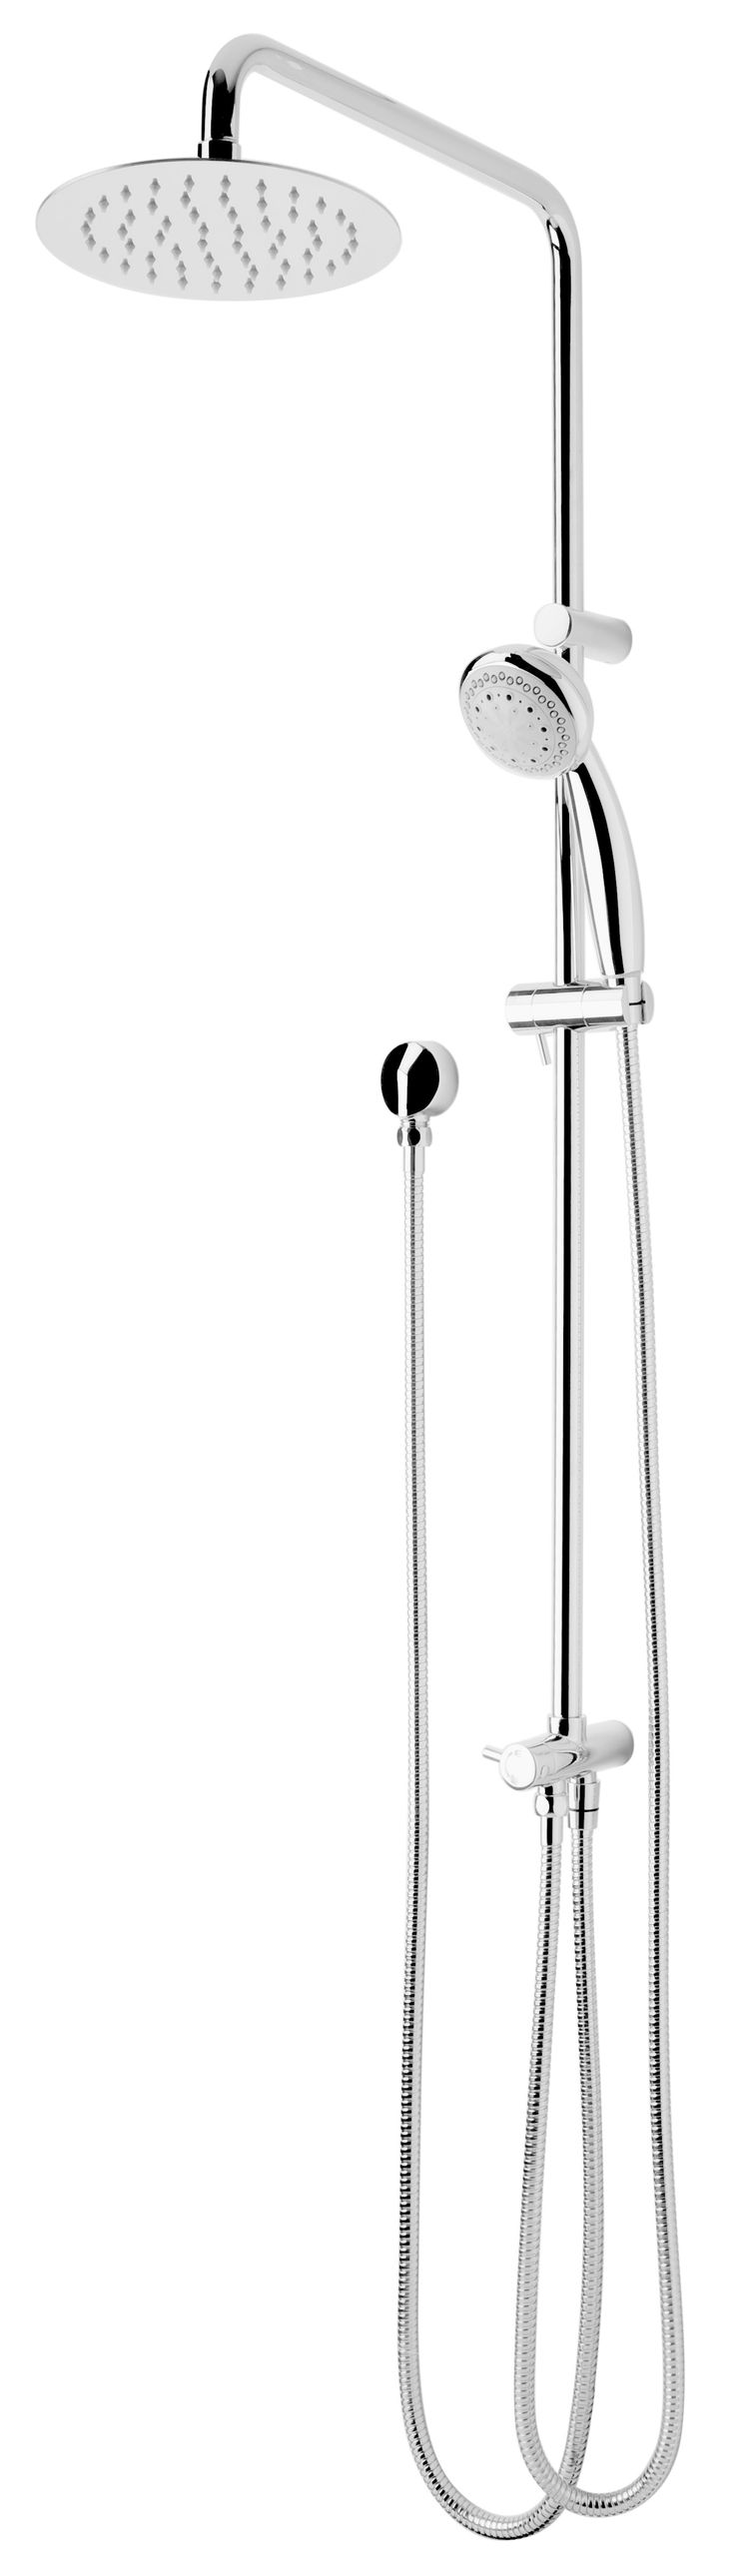 FORENO DOUBLE HEADER SHOWER PANEL CHROME C4-2